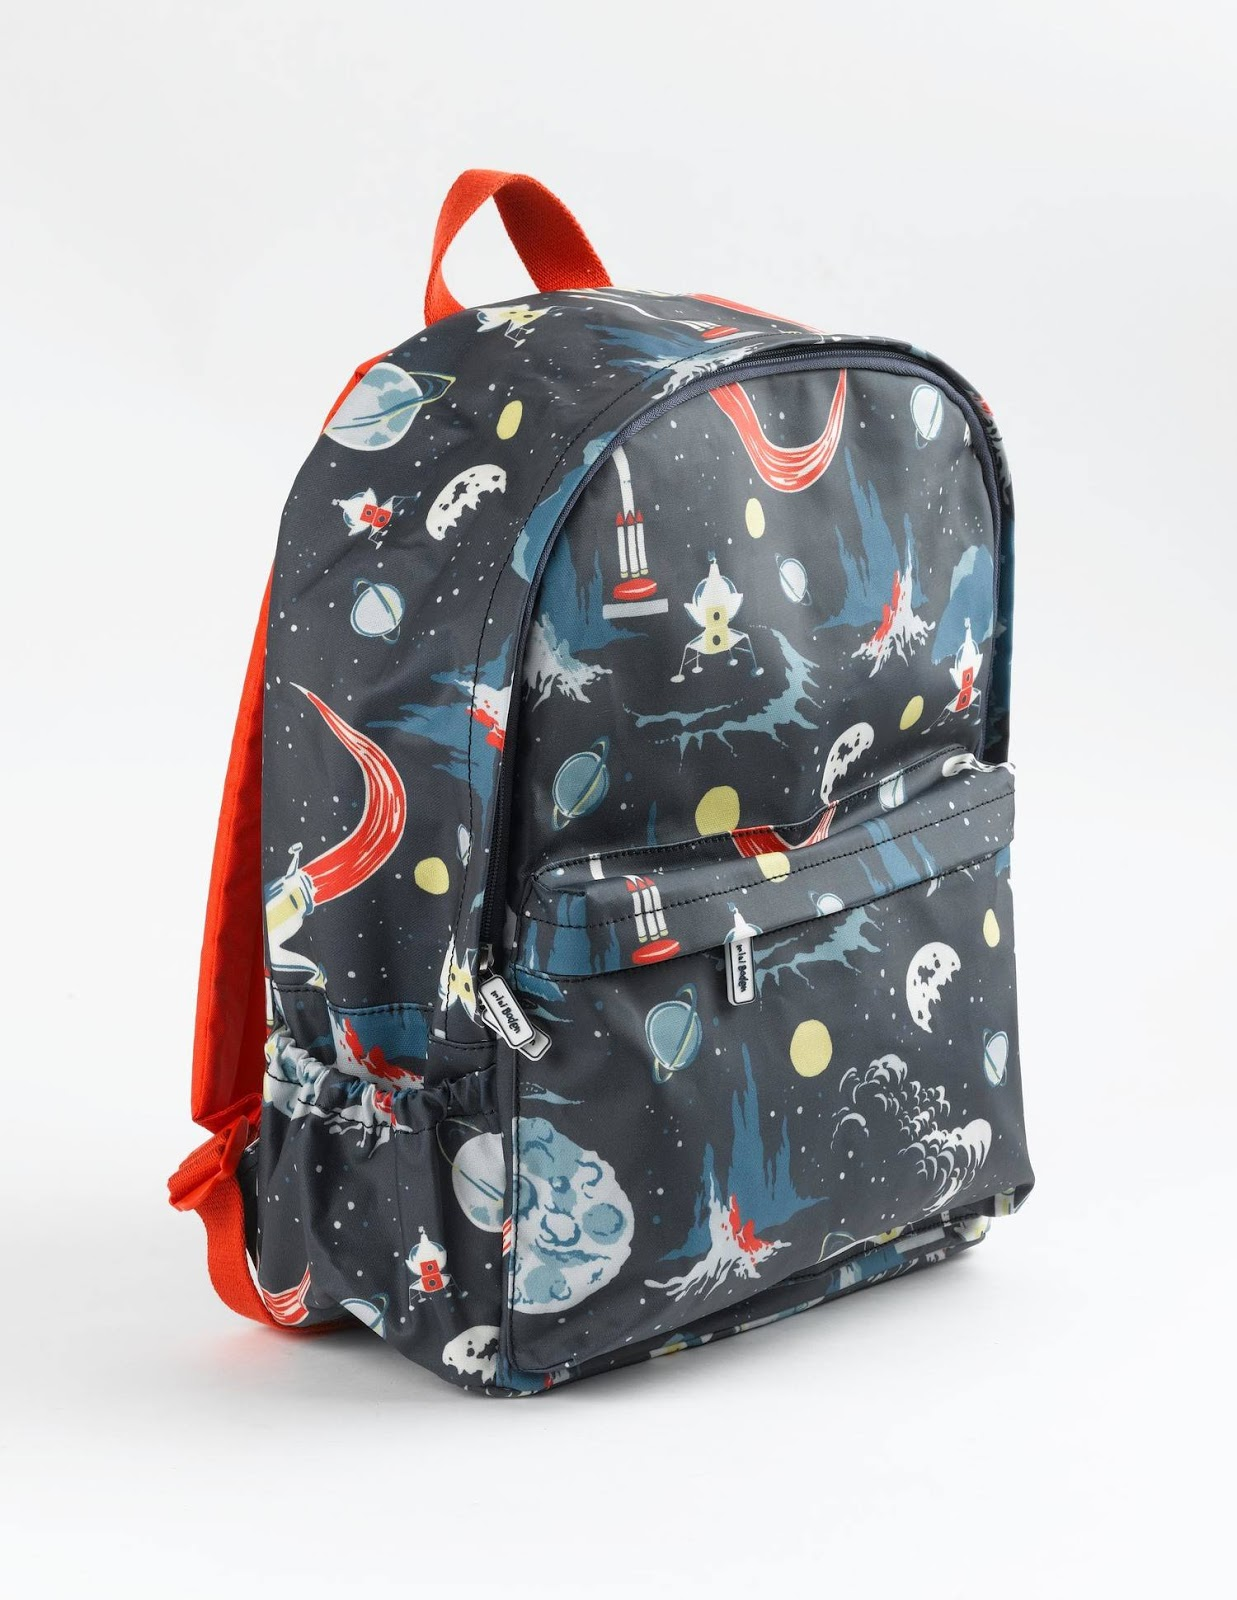 Boden Kids Backpacks | A Stylish Something